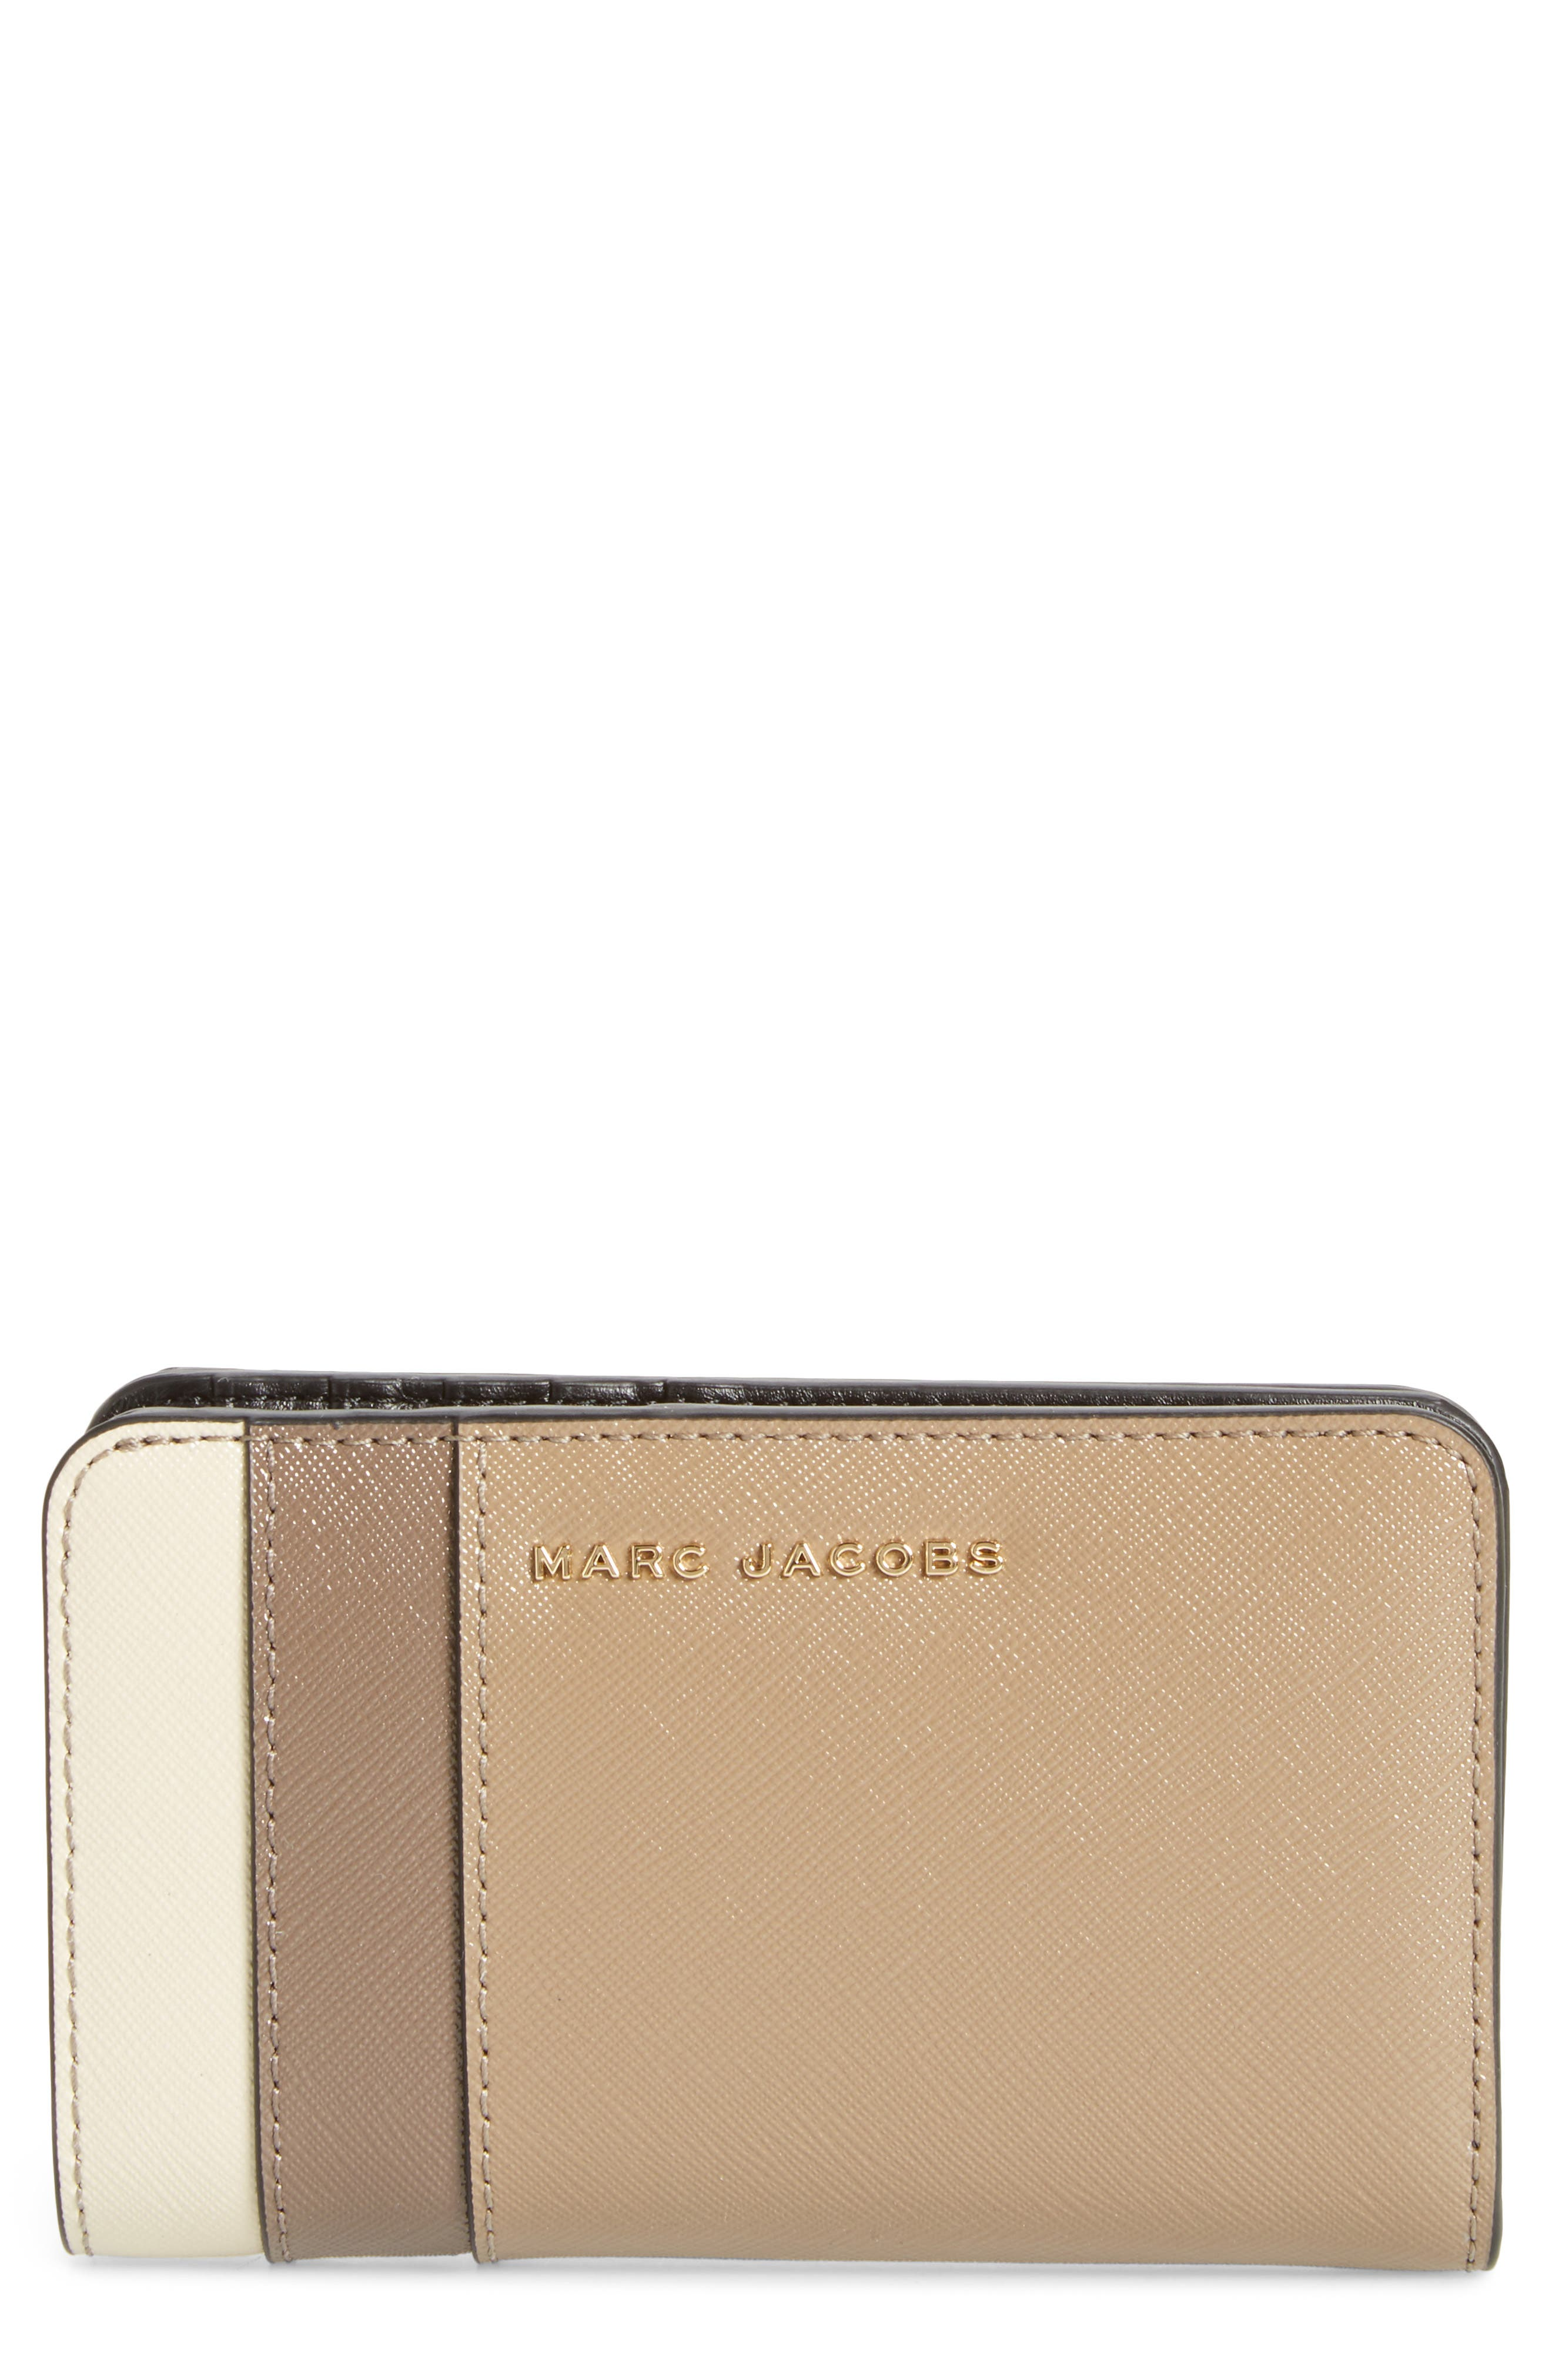 Saffiano Leather Compact Wallet,                         Main,                         color, French Grey Multi